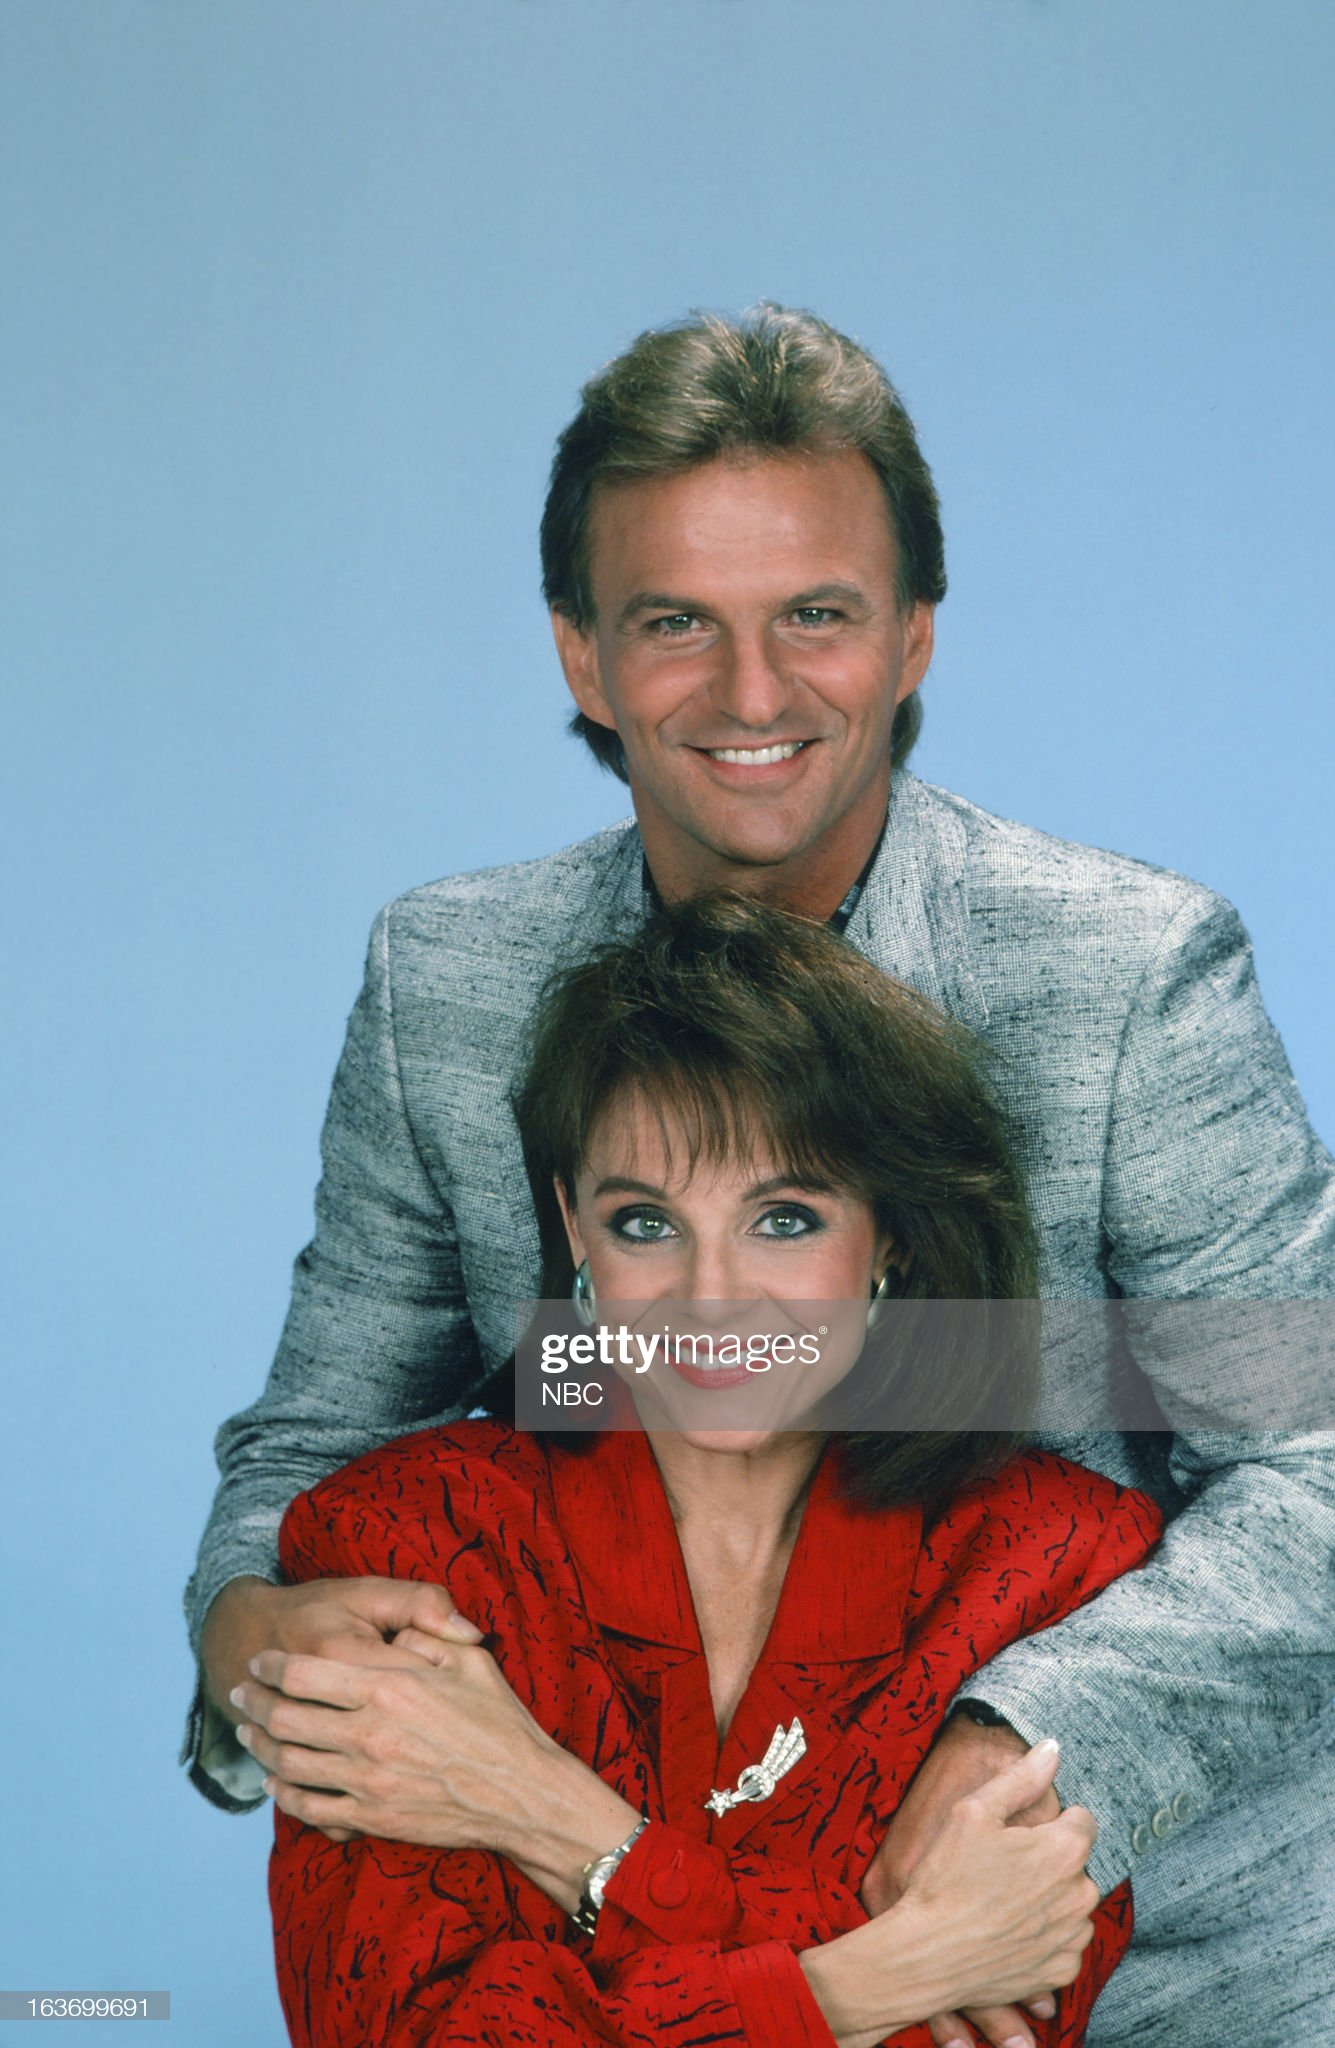 season-2-pictured-valerie-harper-as-valerie-hogan-josh-taylor-as-picture-id163699691